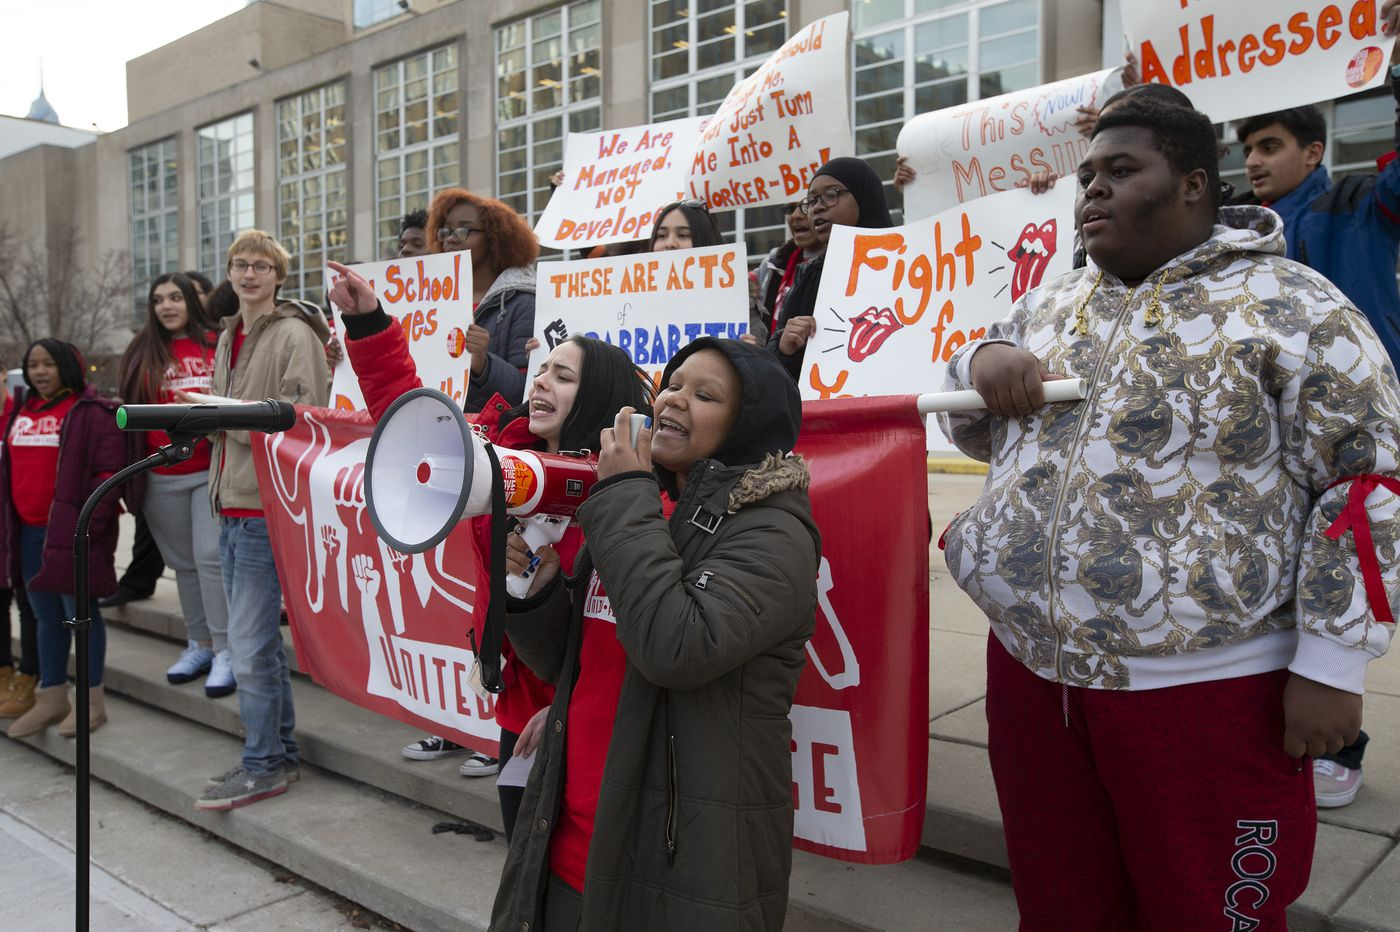 Advocates rally to get Philadelphia School District to publicize mental health resources for students